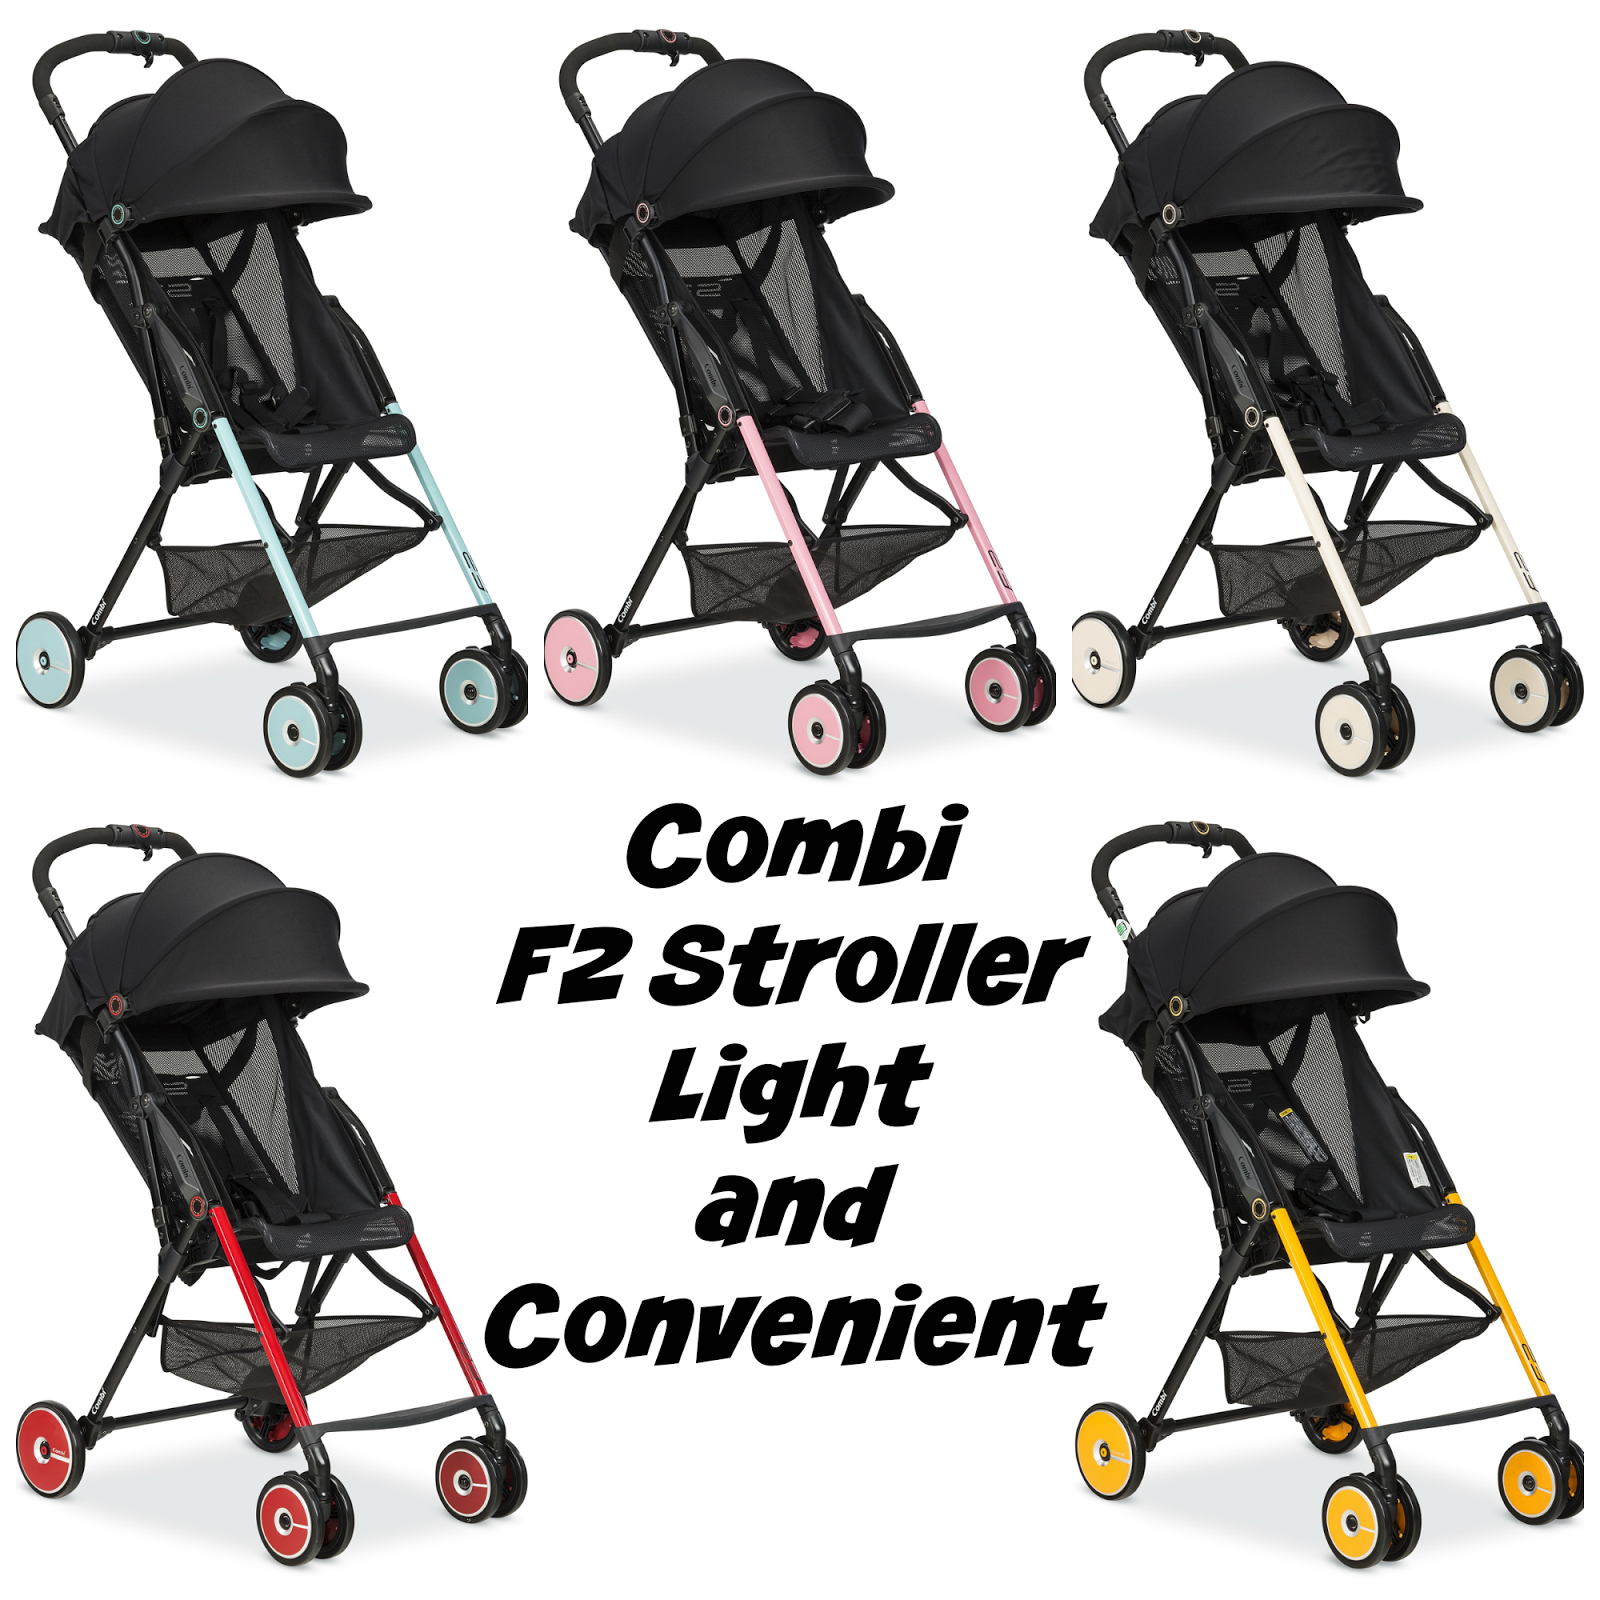 The F2 Stroller by Combi - Light and Convenient | AnnMarie John